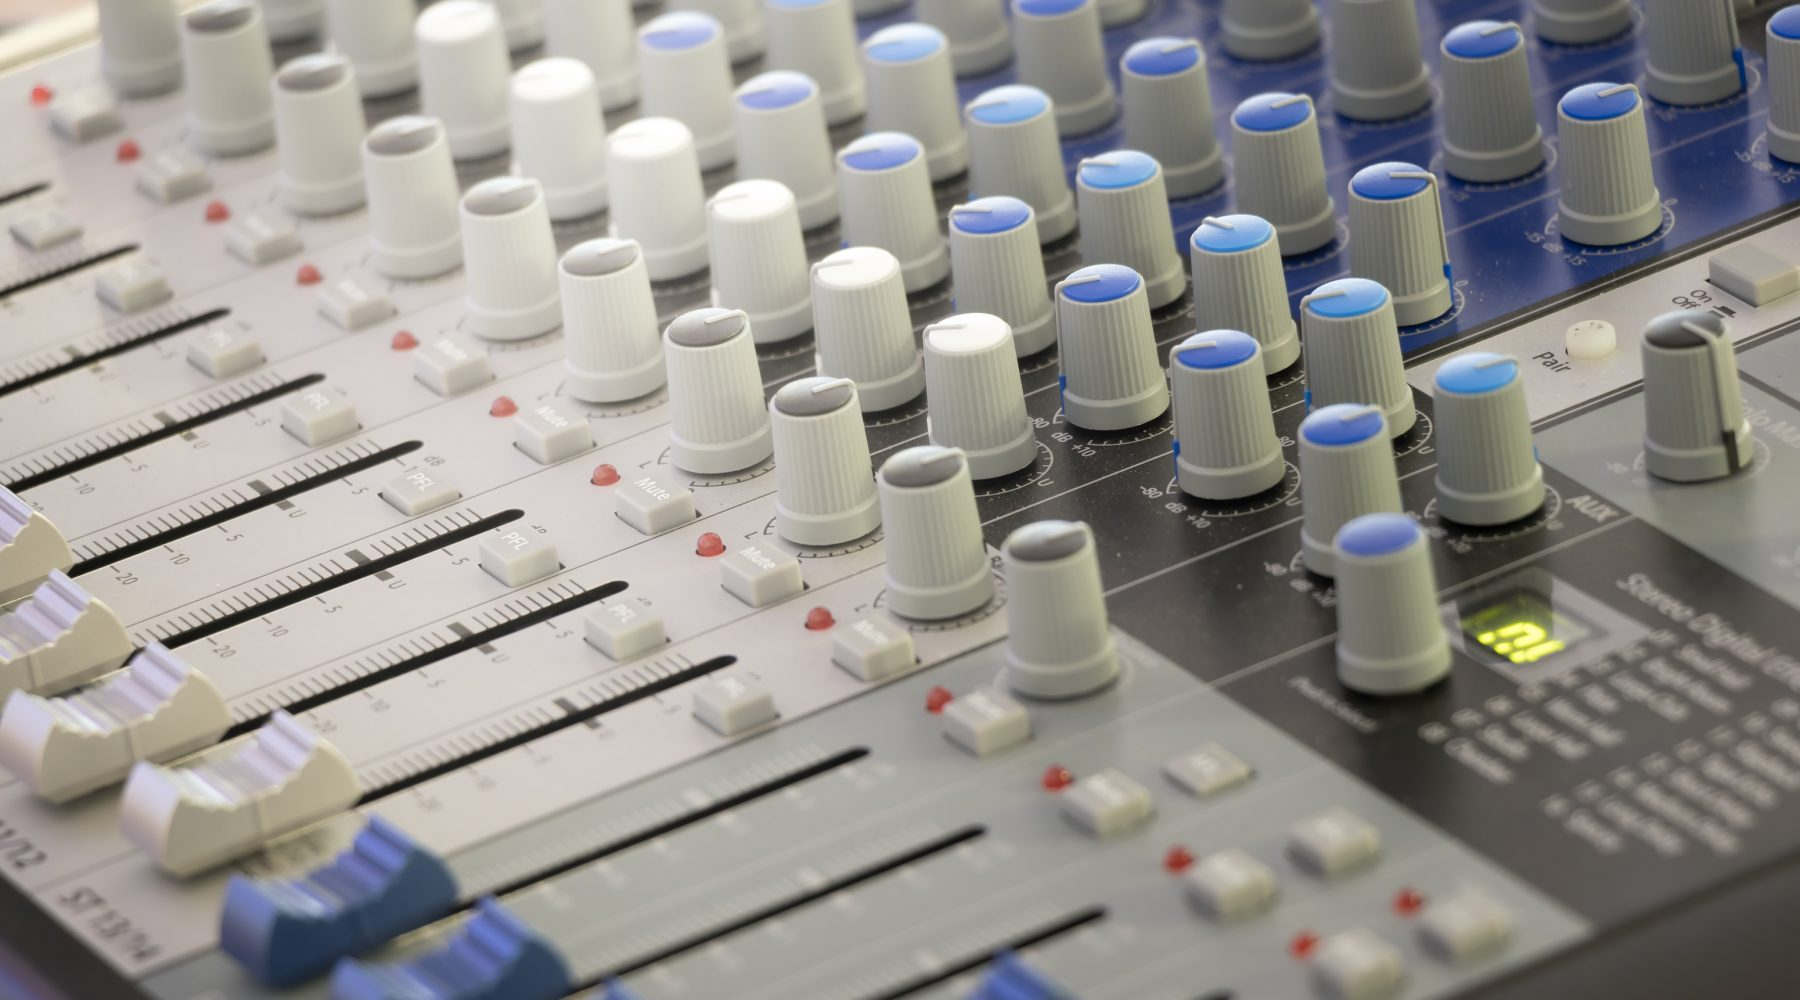 5 Tips for Adding an Audio Codec to an Embedded System